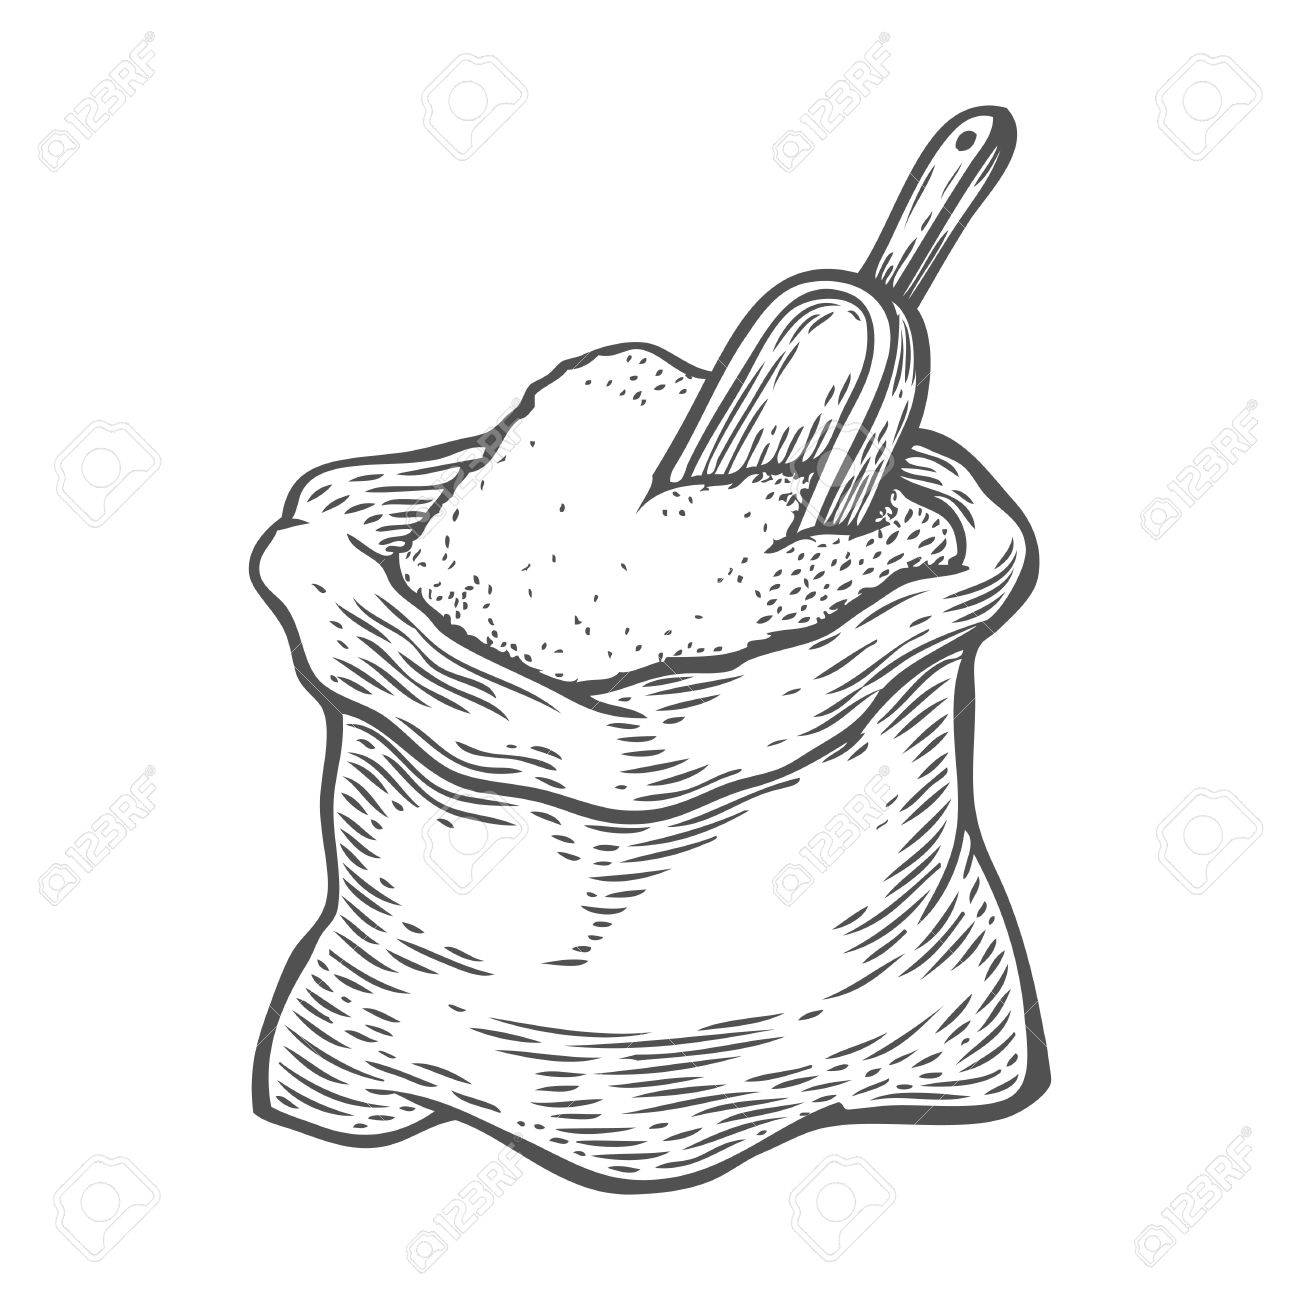 1300x1300 Sack With Whole Flour Or Sugar With Scoop. Hand Drawn Sketch